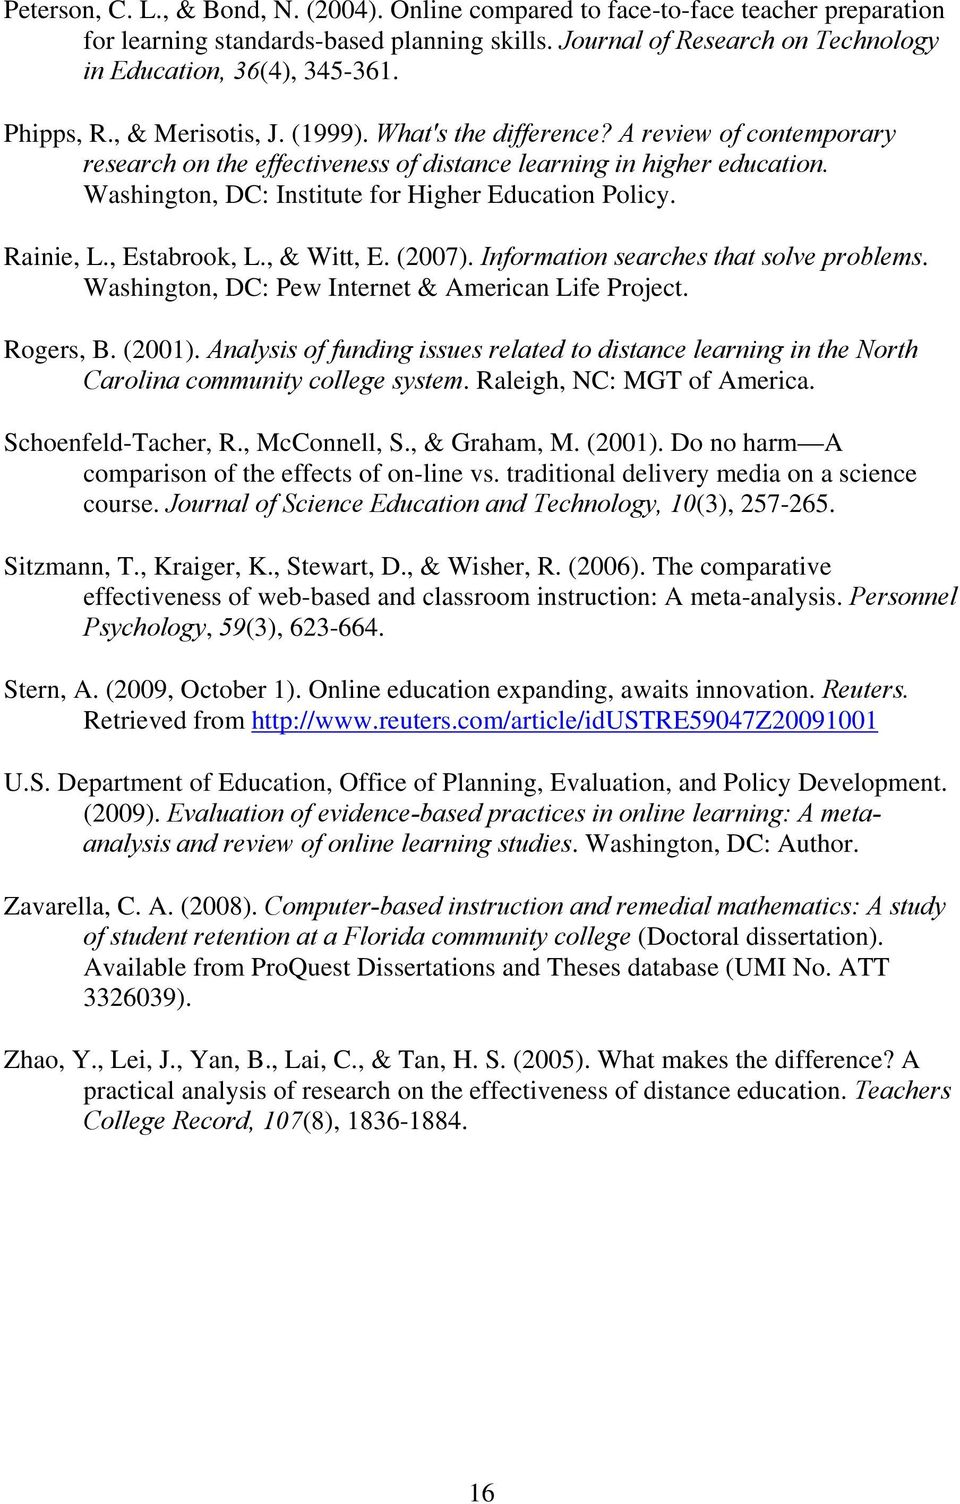 Washington, DC: Institute for Higher Education Policy. Rainie, L., Estabrook, L., & Witt, E. (2007). Information searches that solve problems. Washington, DC: Pew Internet & American Life Project.